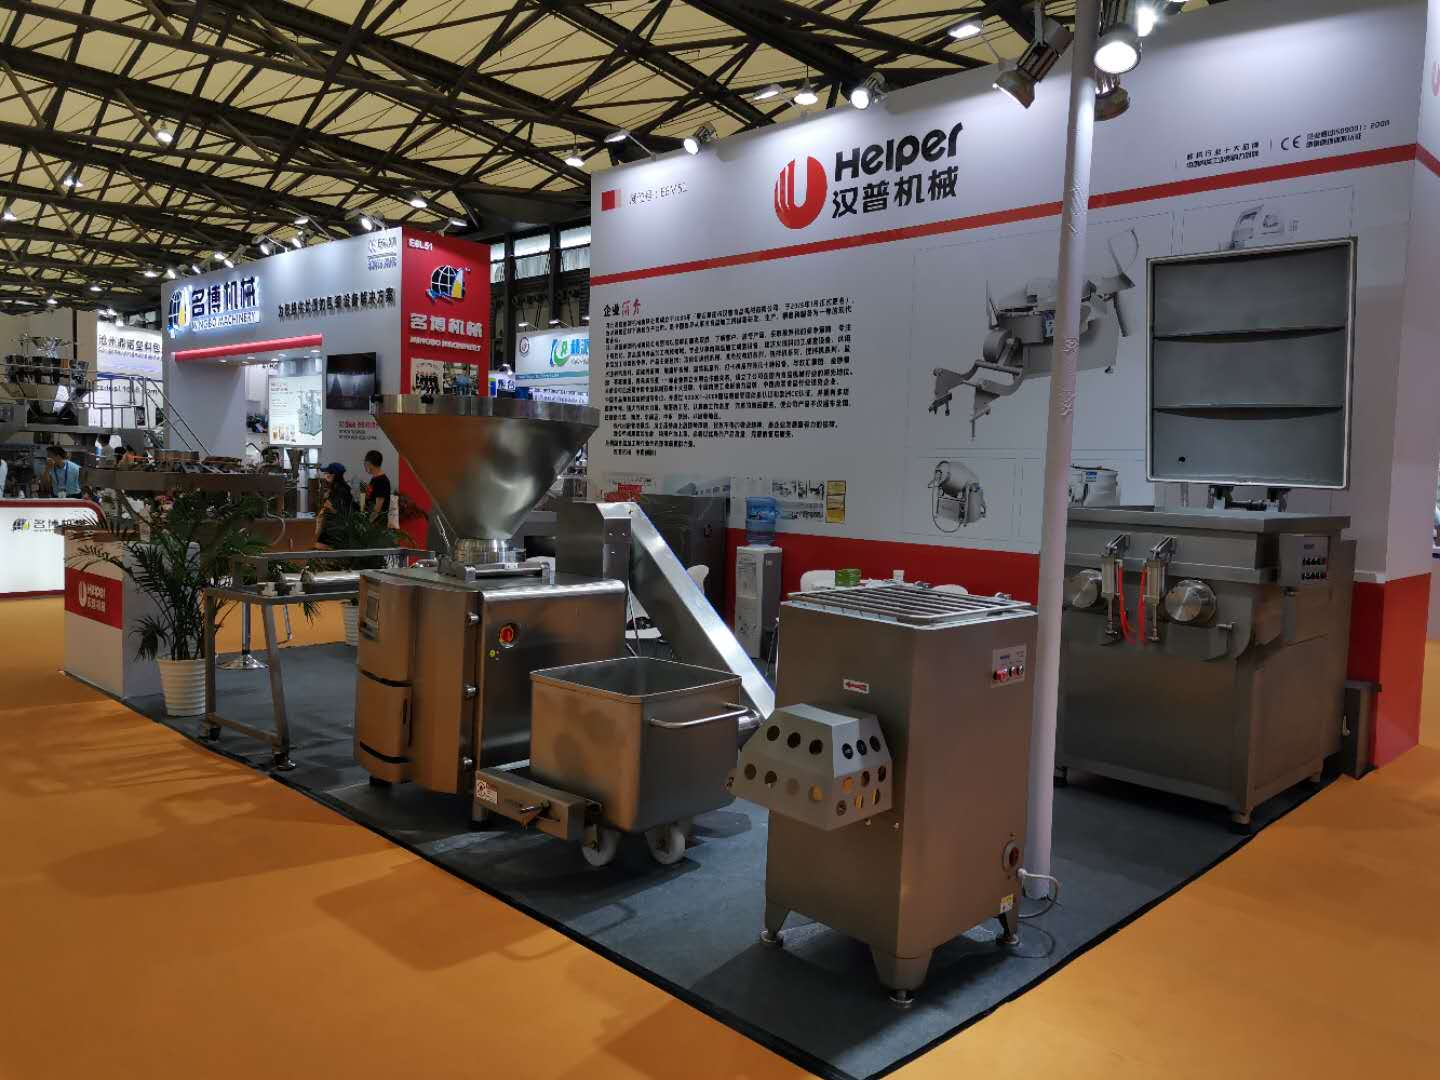 Helper Food Machinery Petfair China Exhibition 2020